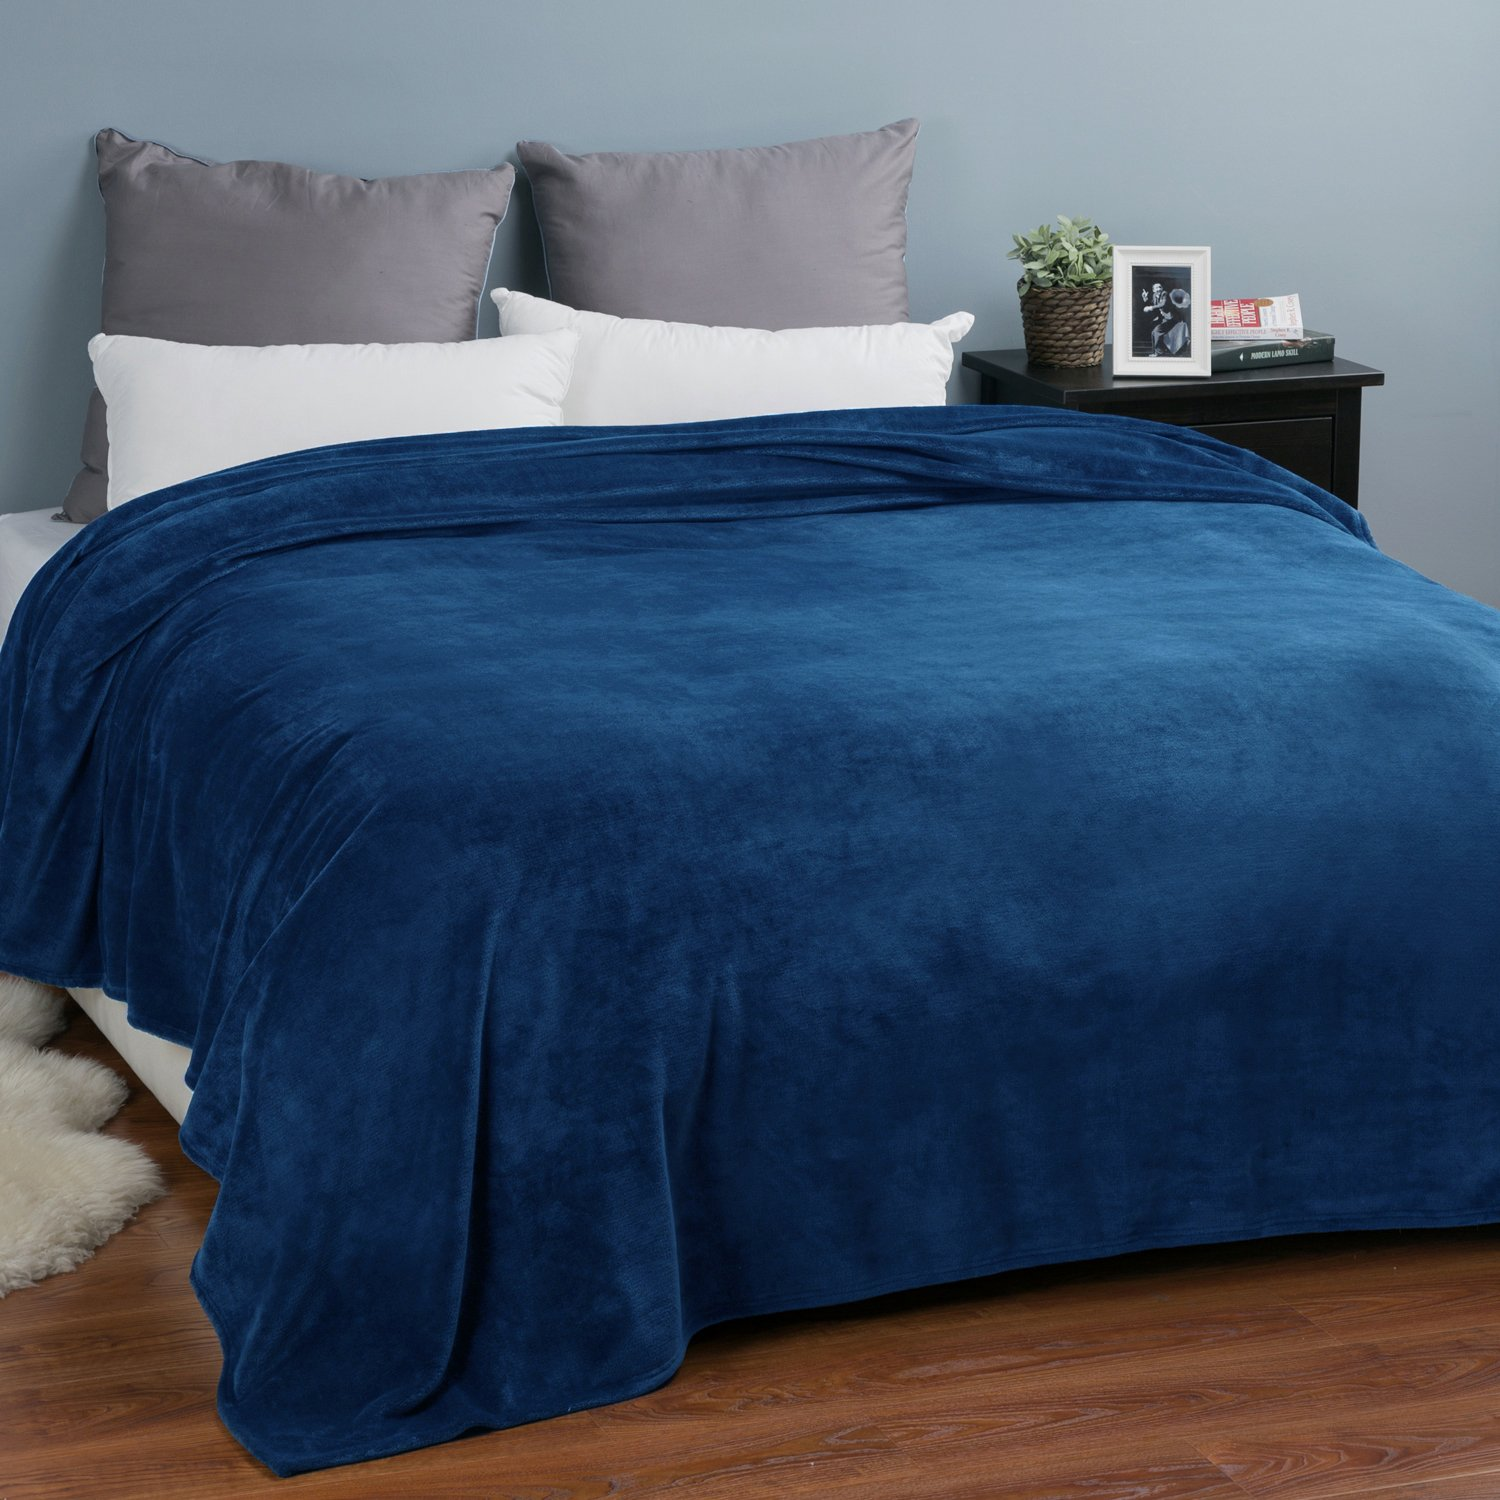 Bedsure Flannel Fleece Luxury Blanket Blue Navy Throw Lightweight Cozy Plush Microfiber Solid Blanket